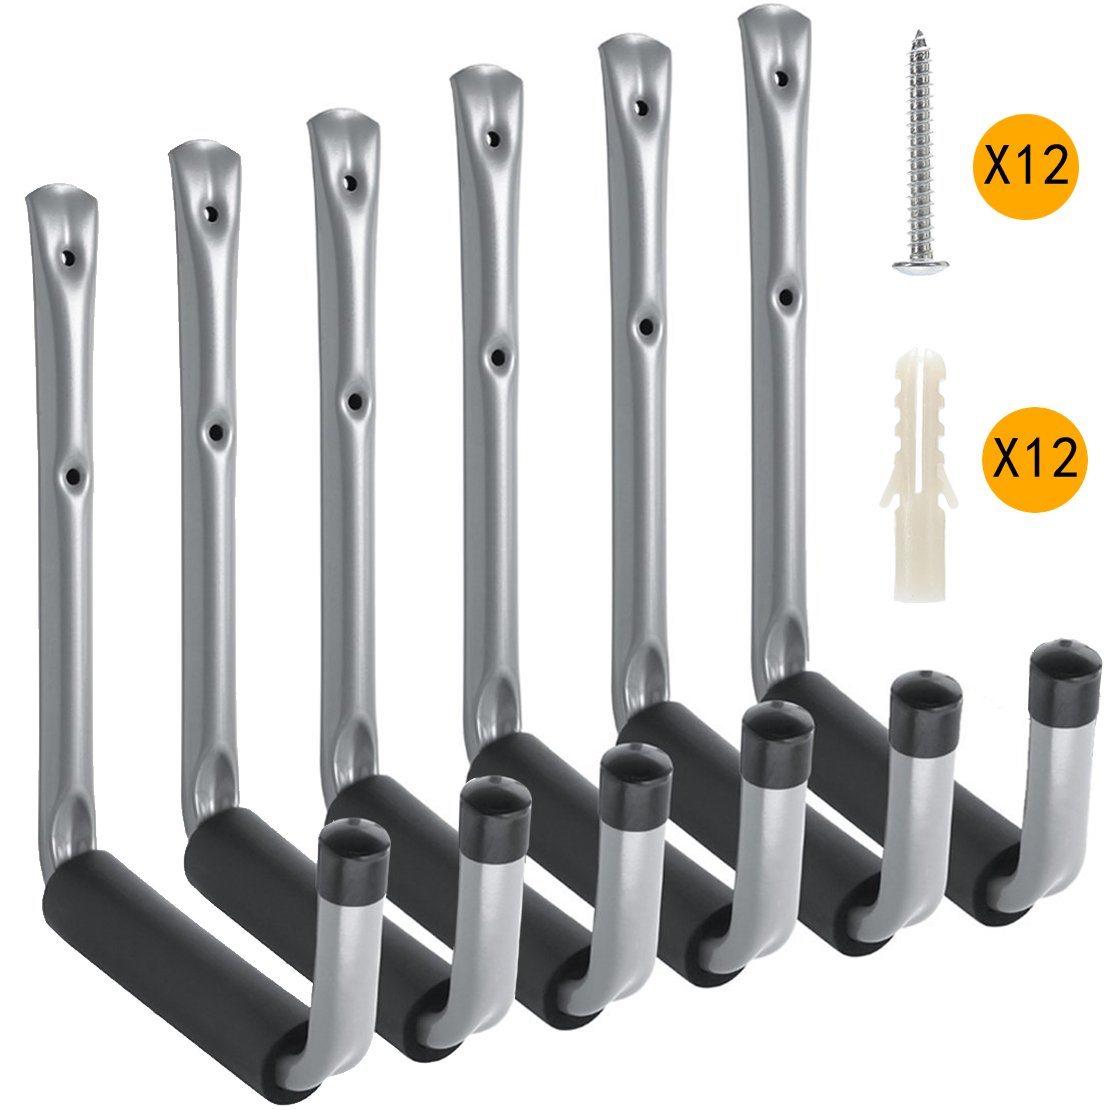 Heavy Duty Garage Storage Utility Hooks with Jumbo Arm by Ihomepark, Wall Mount Garage Hanger & Organizer for Ladder Tool Chair Hose(6 Pack - Gray)